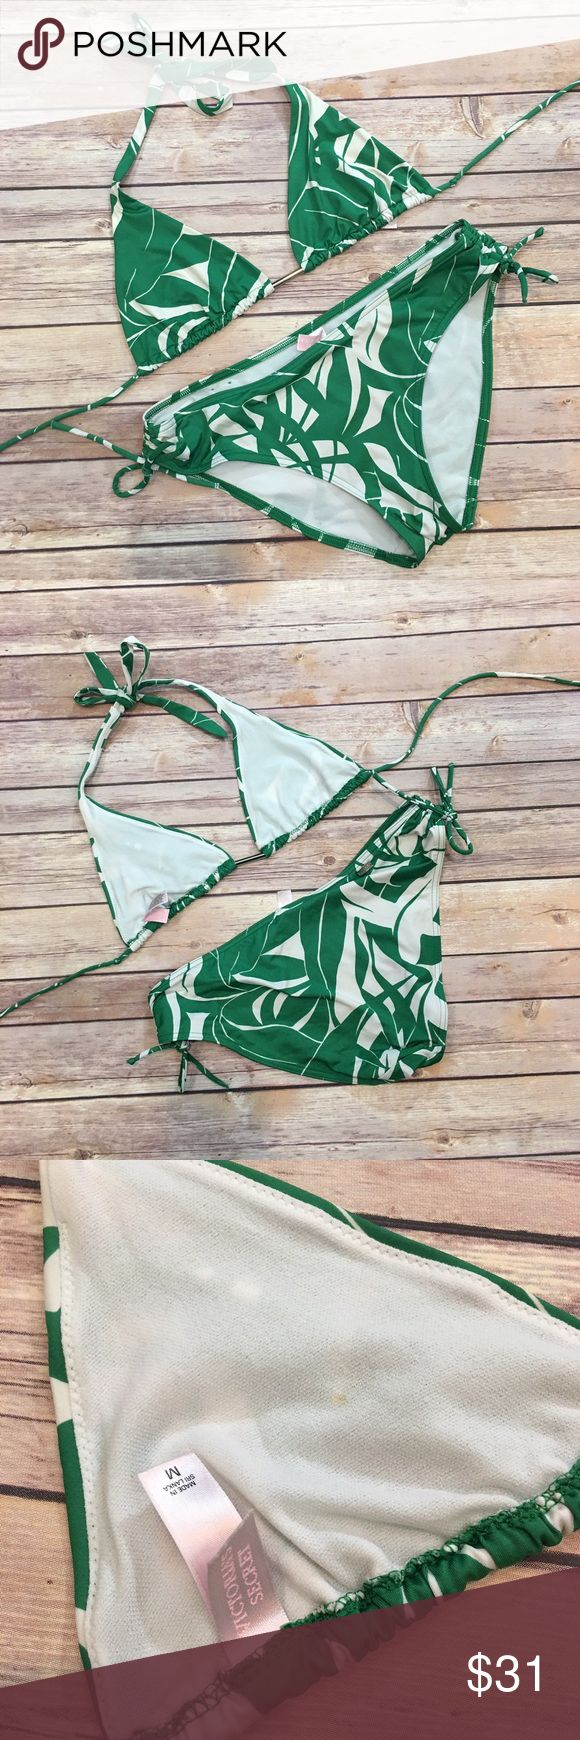 Victoria's Secret Green &a Cream Bikini Set Victoria's Secret green and cream Bikini Set. Both top and bottom size medium. EUC. Please carefully review each photo before purchase as they are the best descriptors of the item. Victoria's Secret Swim Bikinis